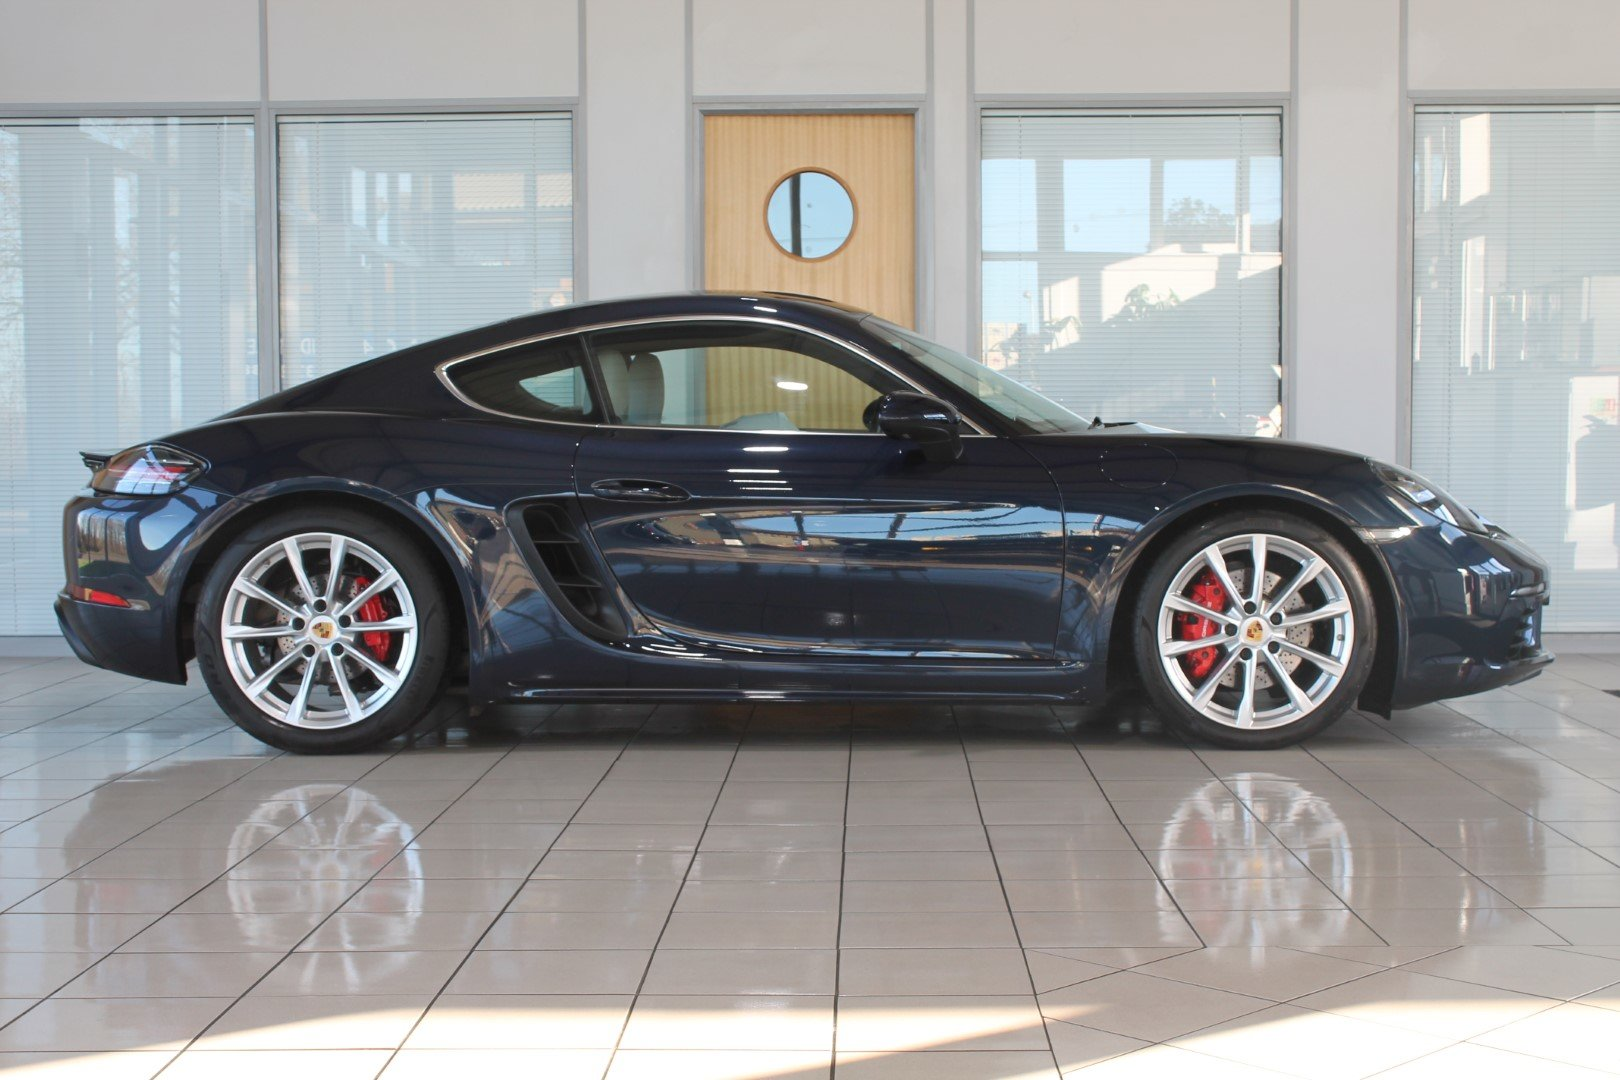 2016 Porsche Cayman (718) 2.5 S PDK - NOW SOLD - MORE REQUIRED For Sale (picture 3 of 12)